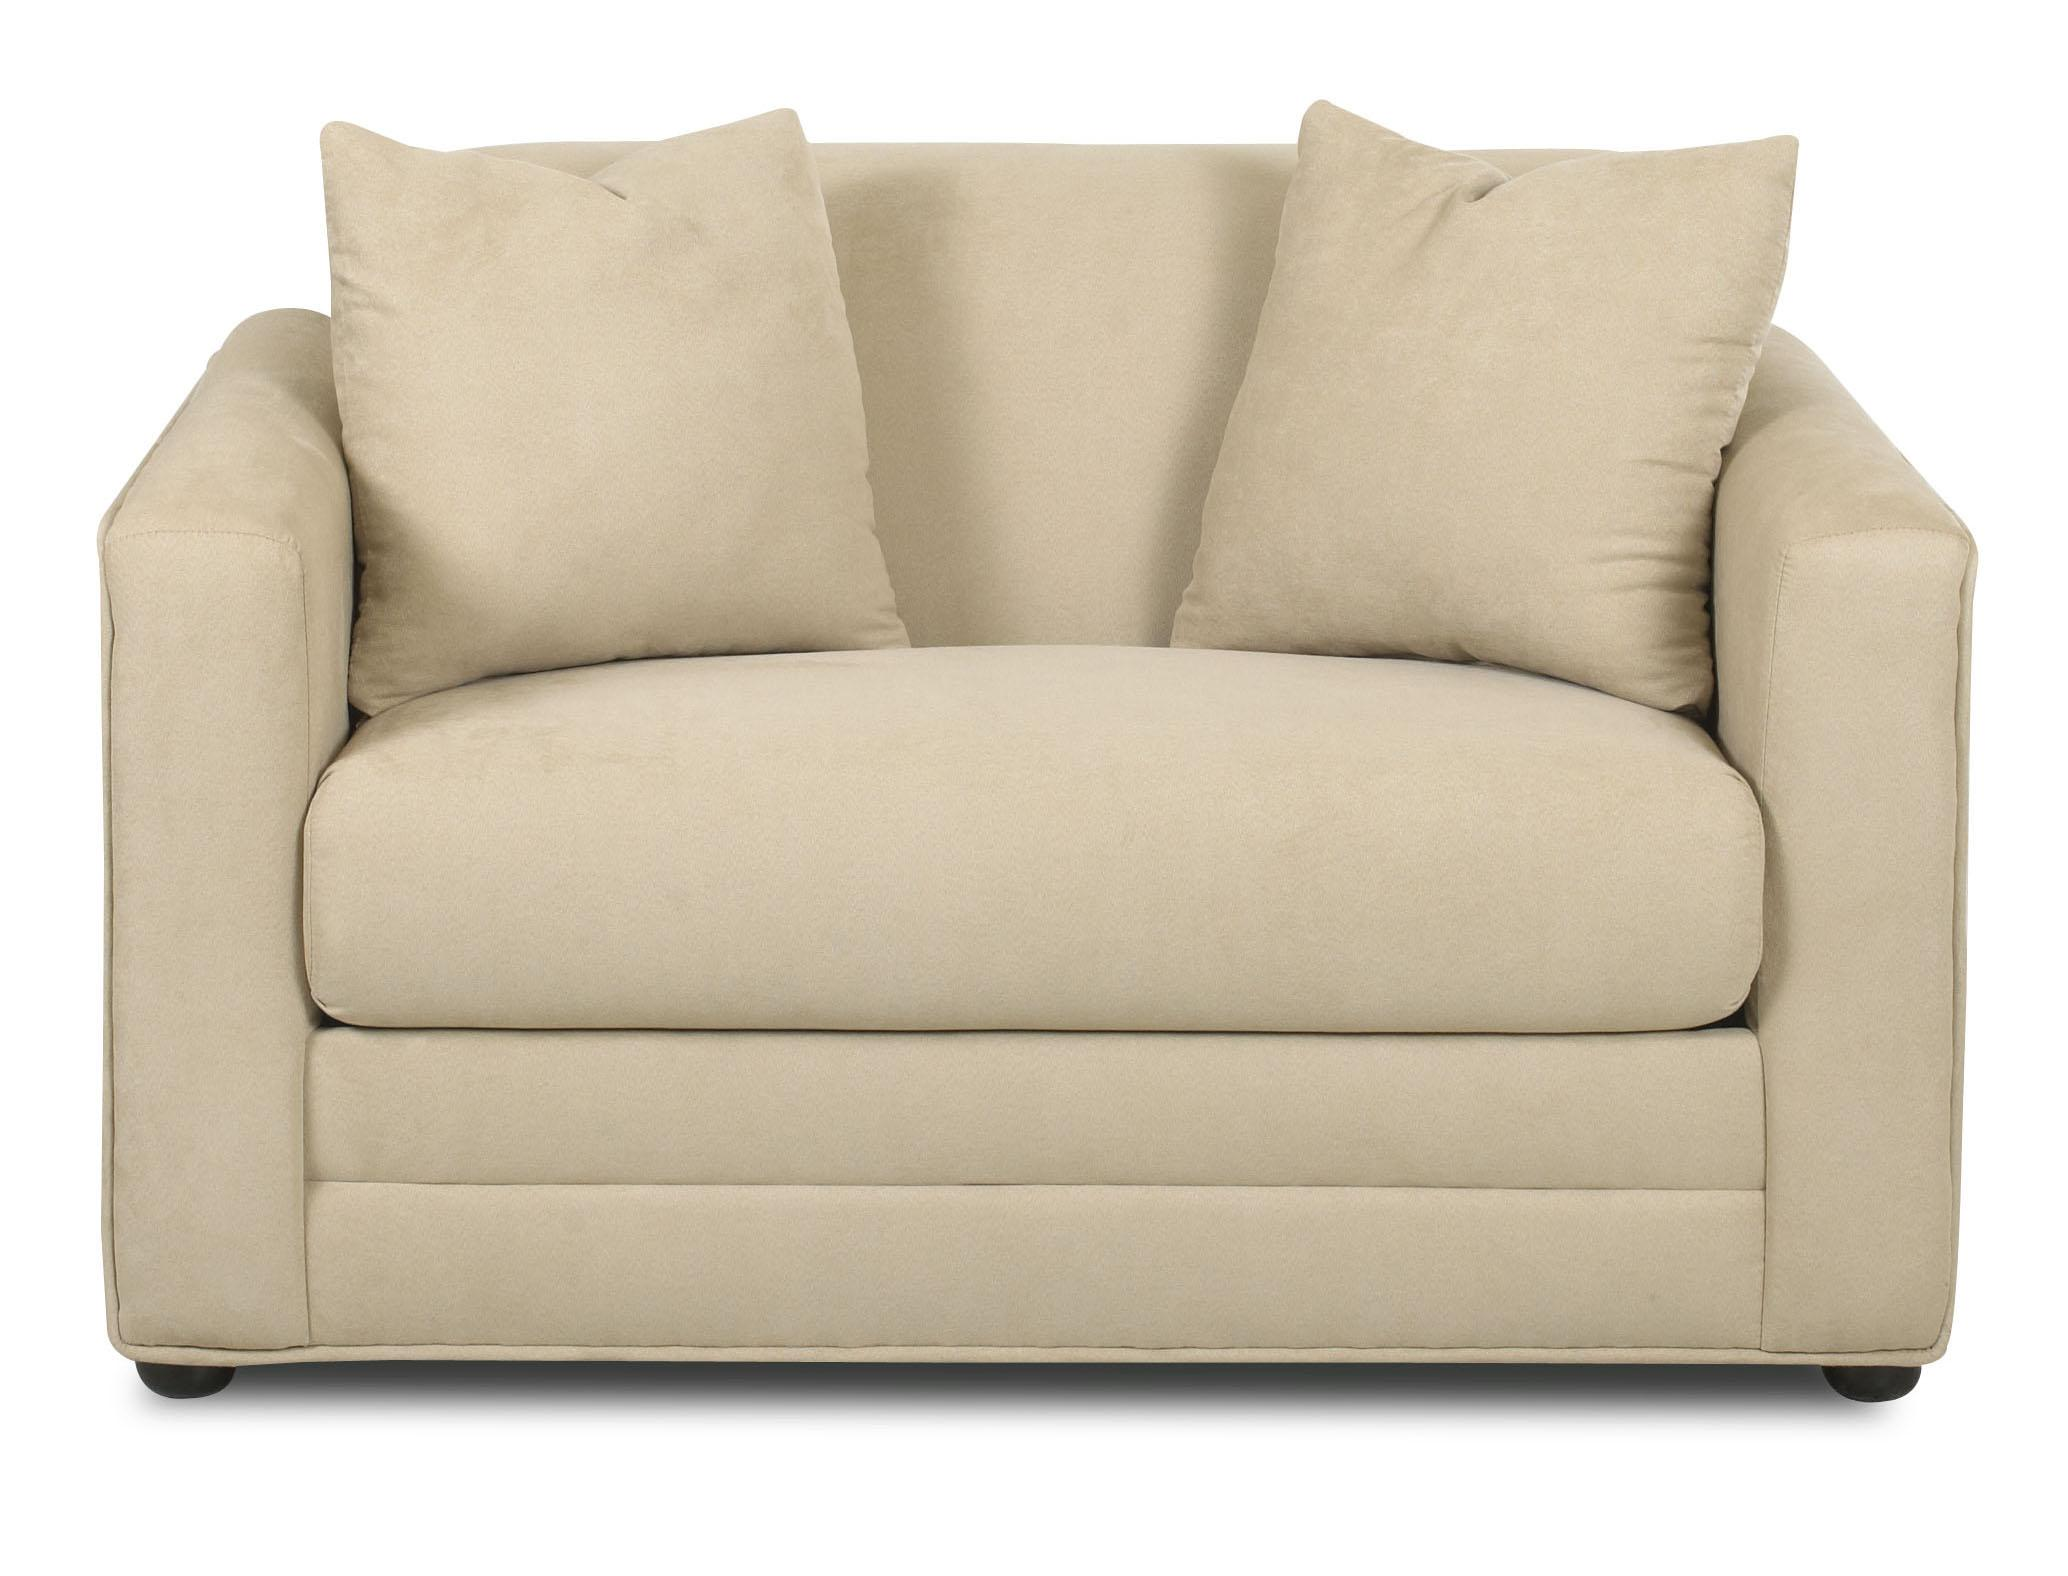 Oversized Chair Sleeper Take Advantage Of Oversized Couch Bed Read These 10 Tips